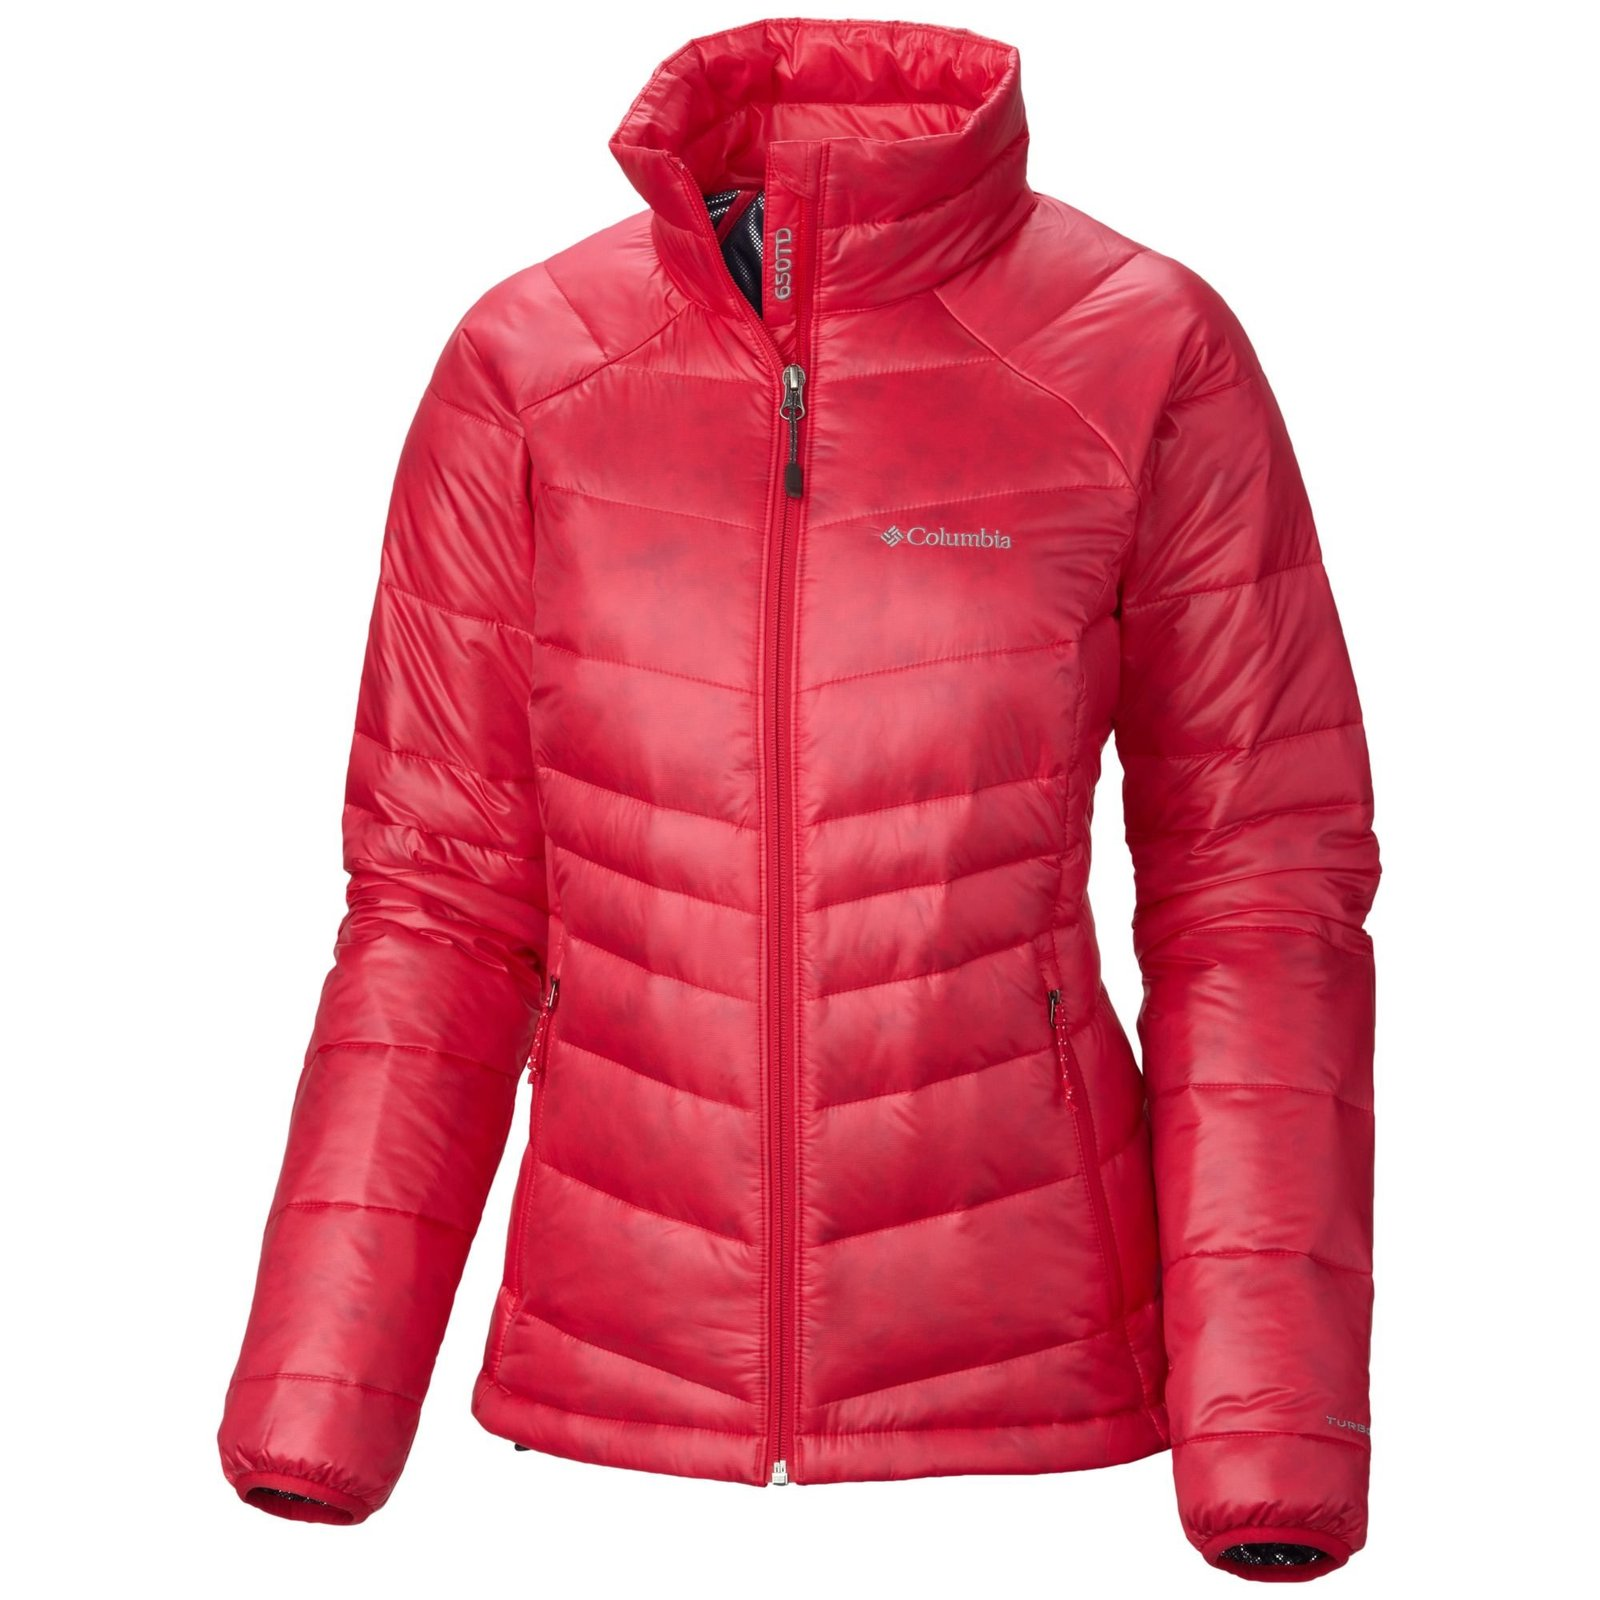 Columbia Women's Gold 650 TurboDown Down Jacket Ruby Red XS